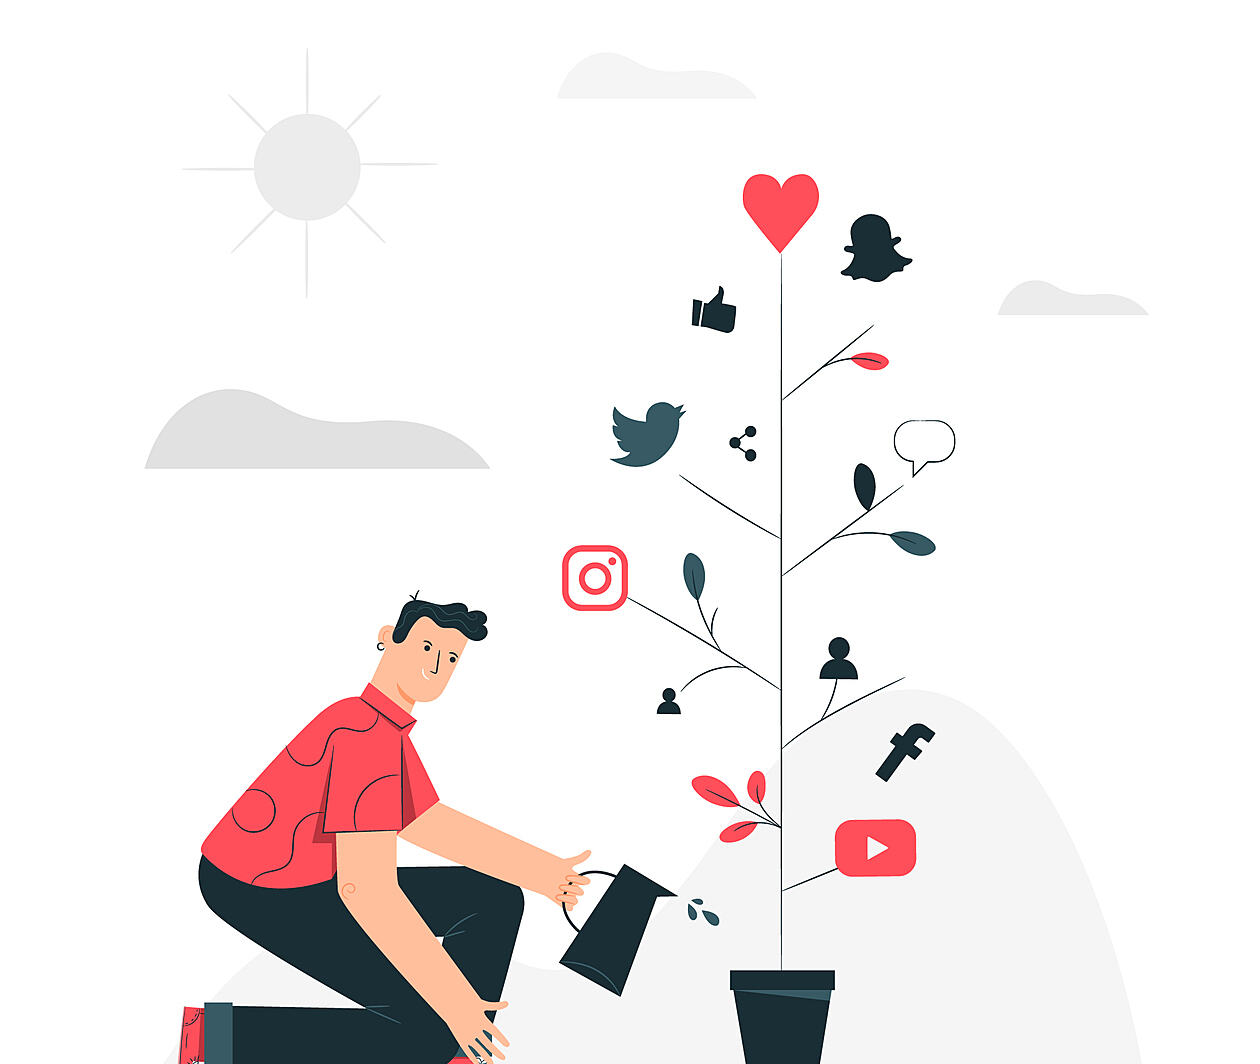 Using Social Media Marketing to Engage Consumers Effectively